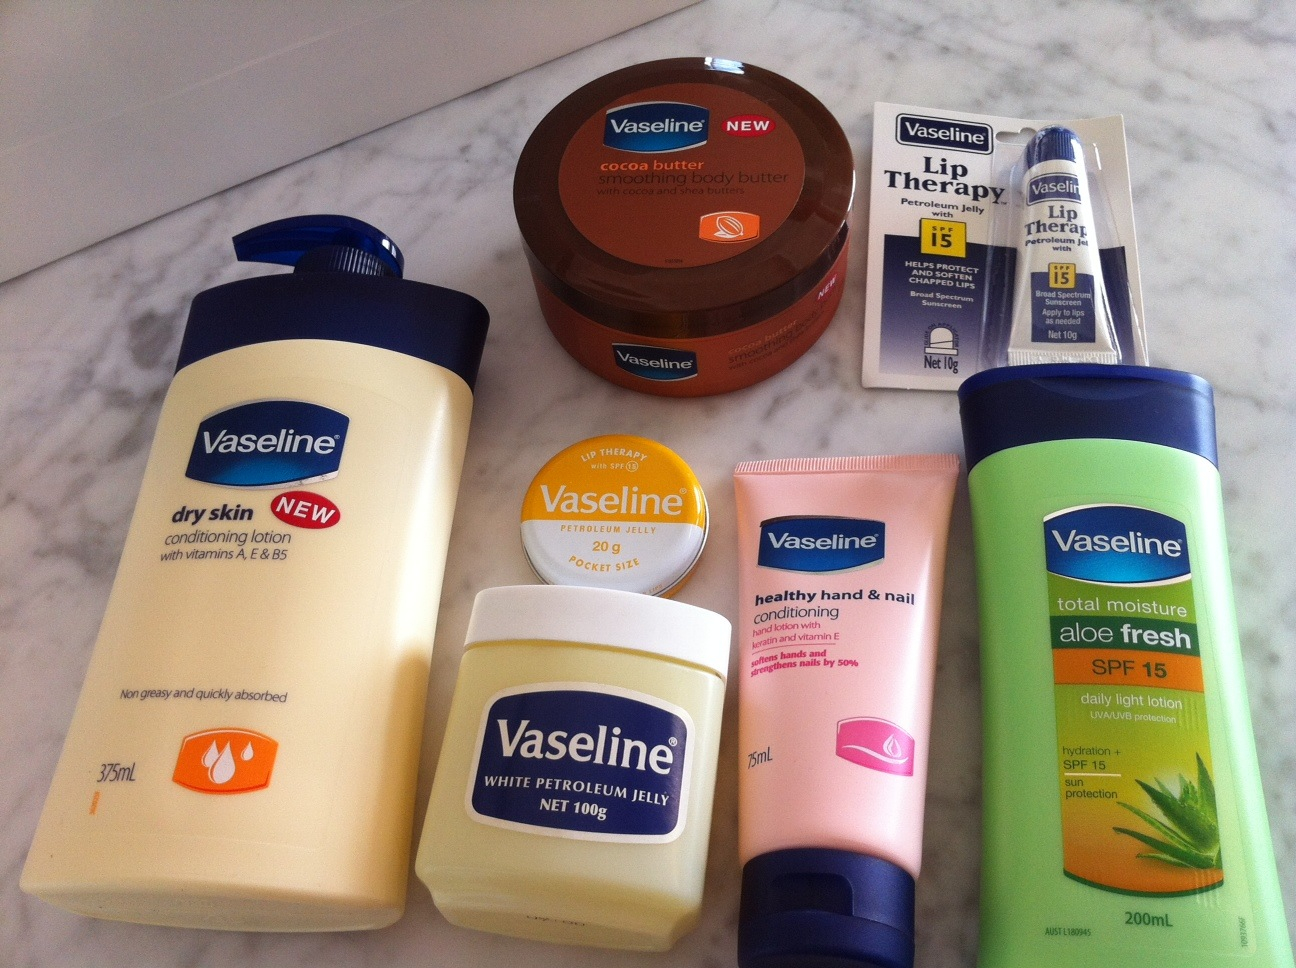 Vaseline Total Moisture Healthy Hand Nail Conditioning ...